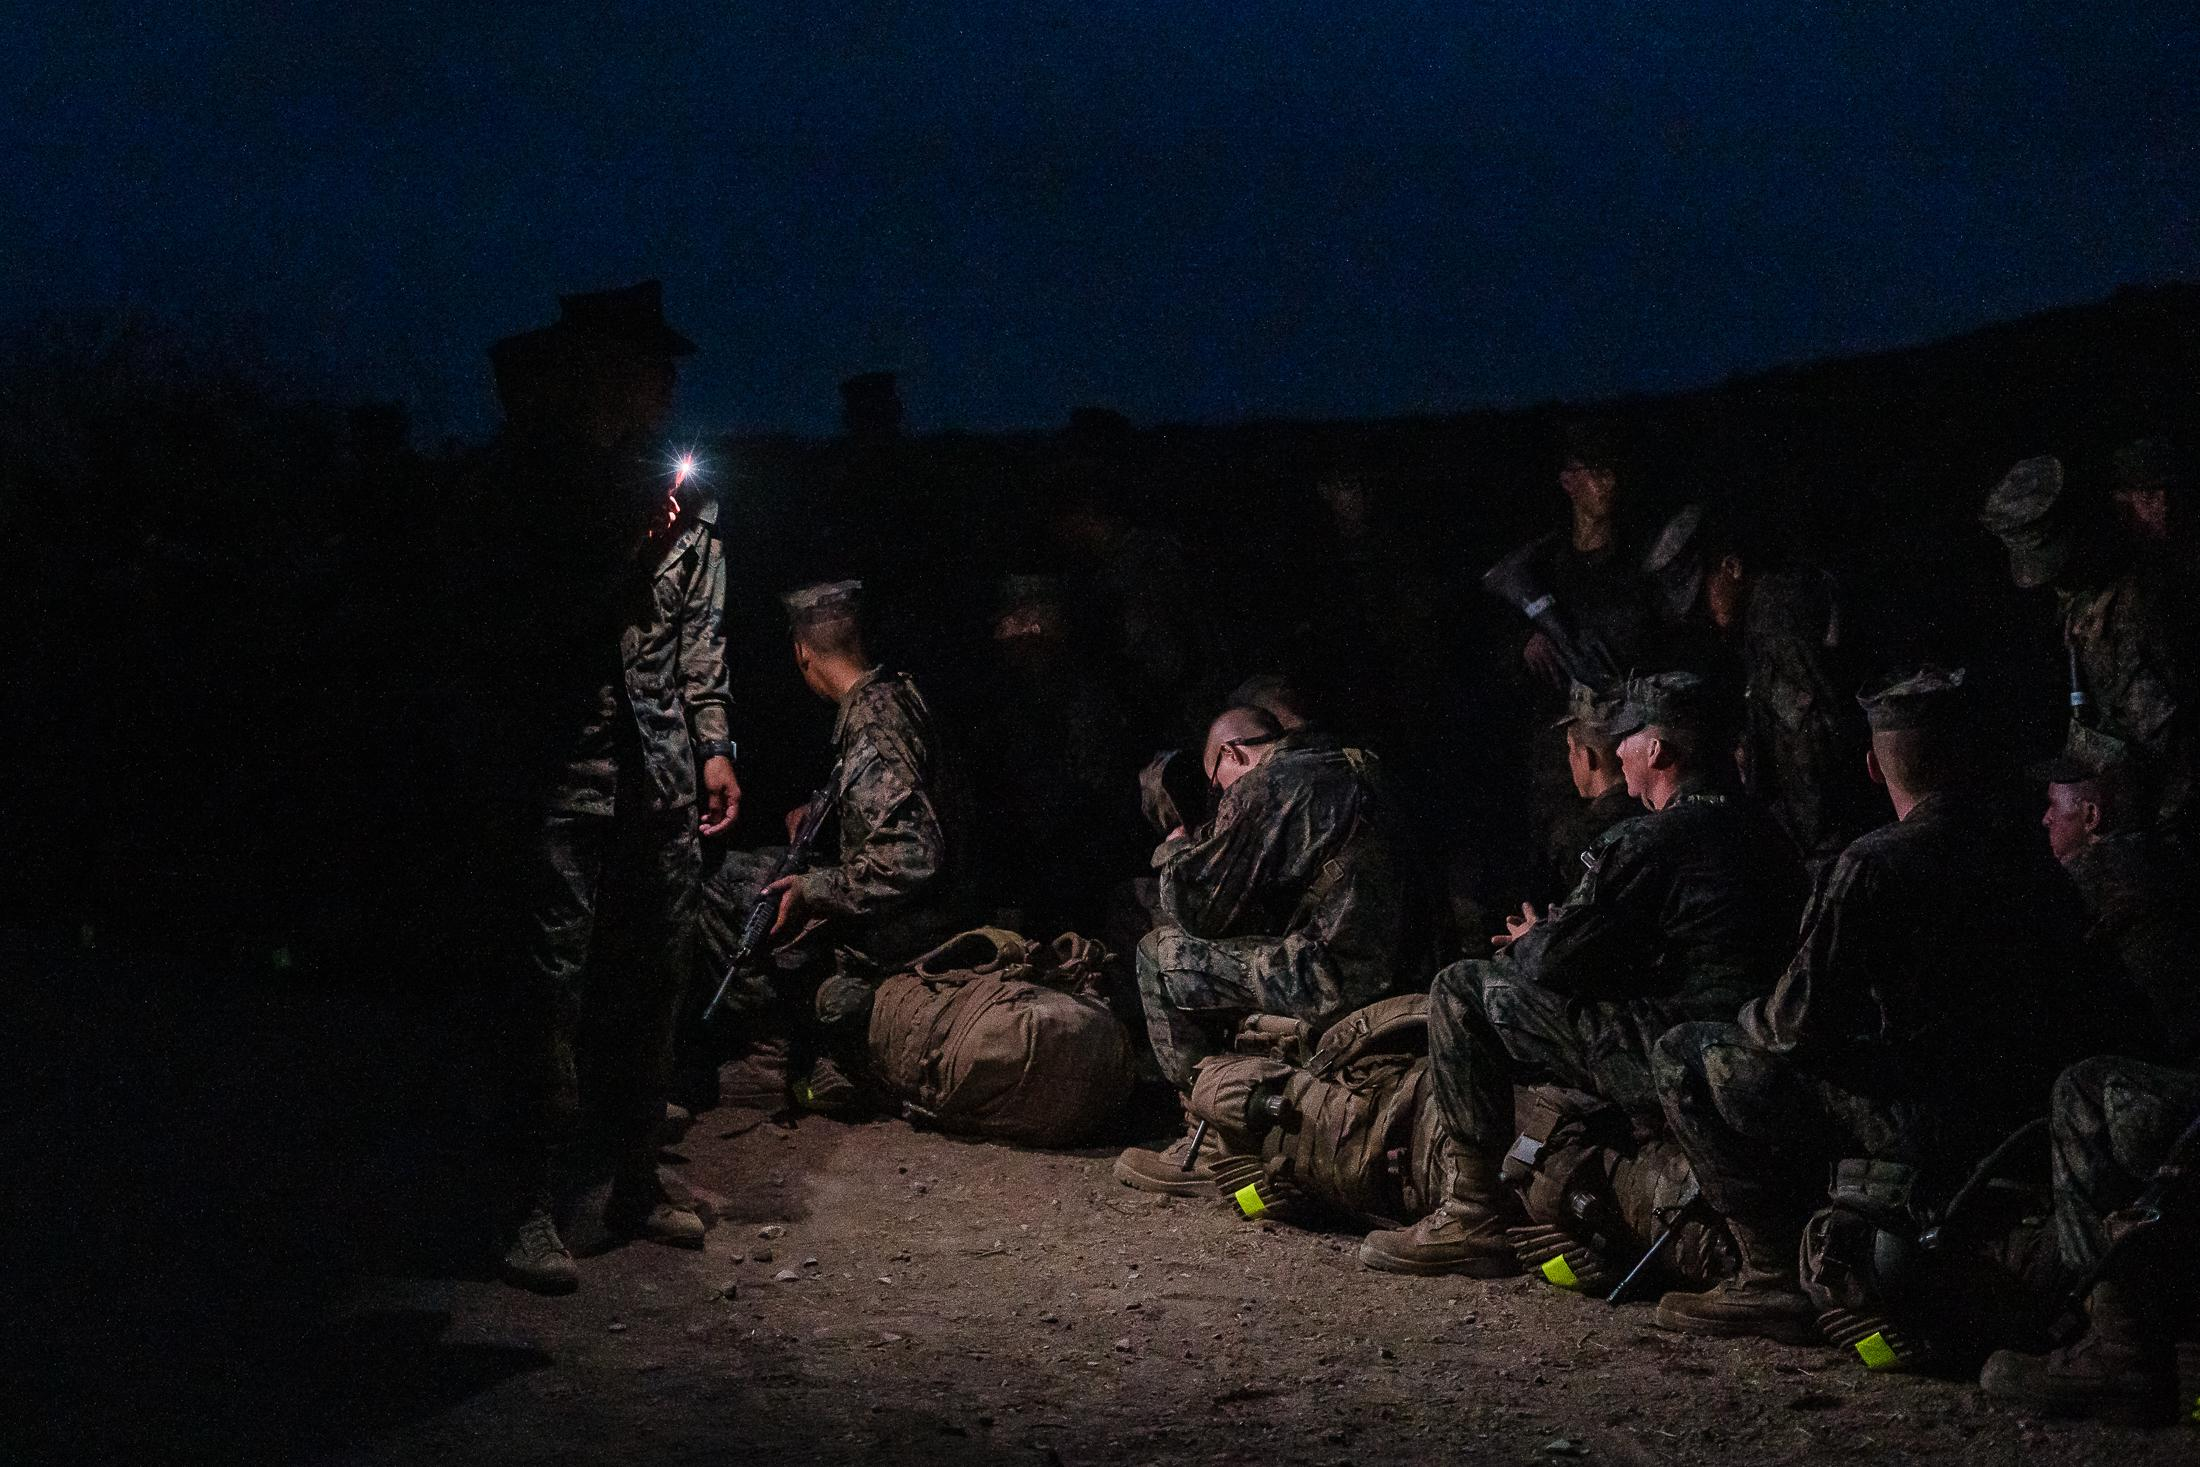 Early morning recruits wait for the rest of the men so they can make their way up one last hill during the three day crucible at Camp Pendleton North in San Diego County, California on October 8, 2020.